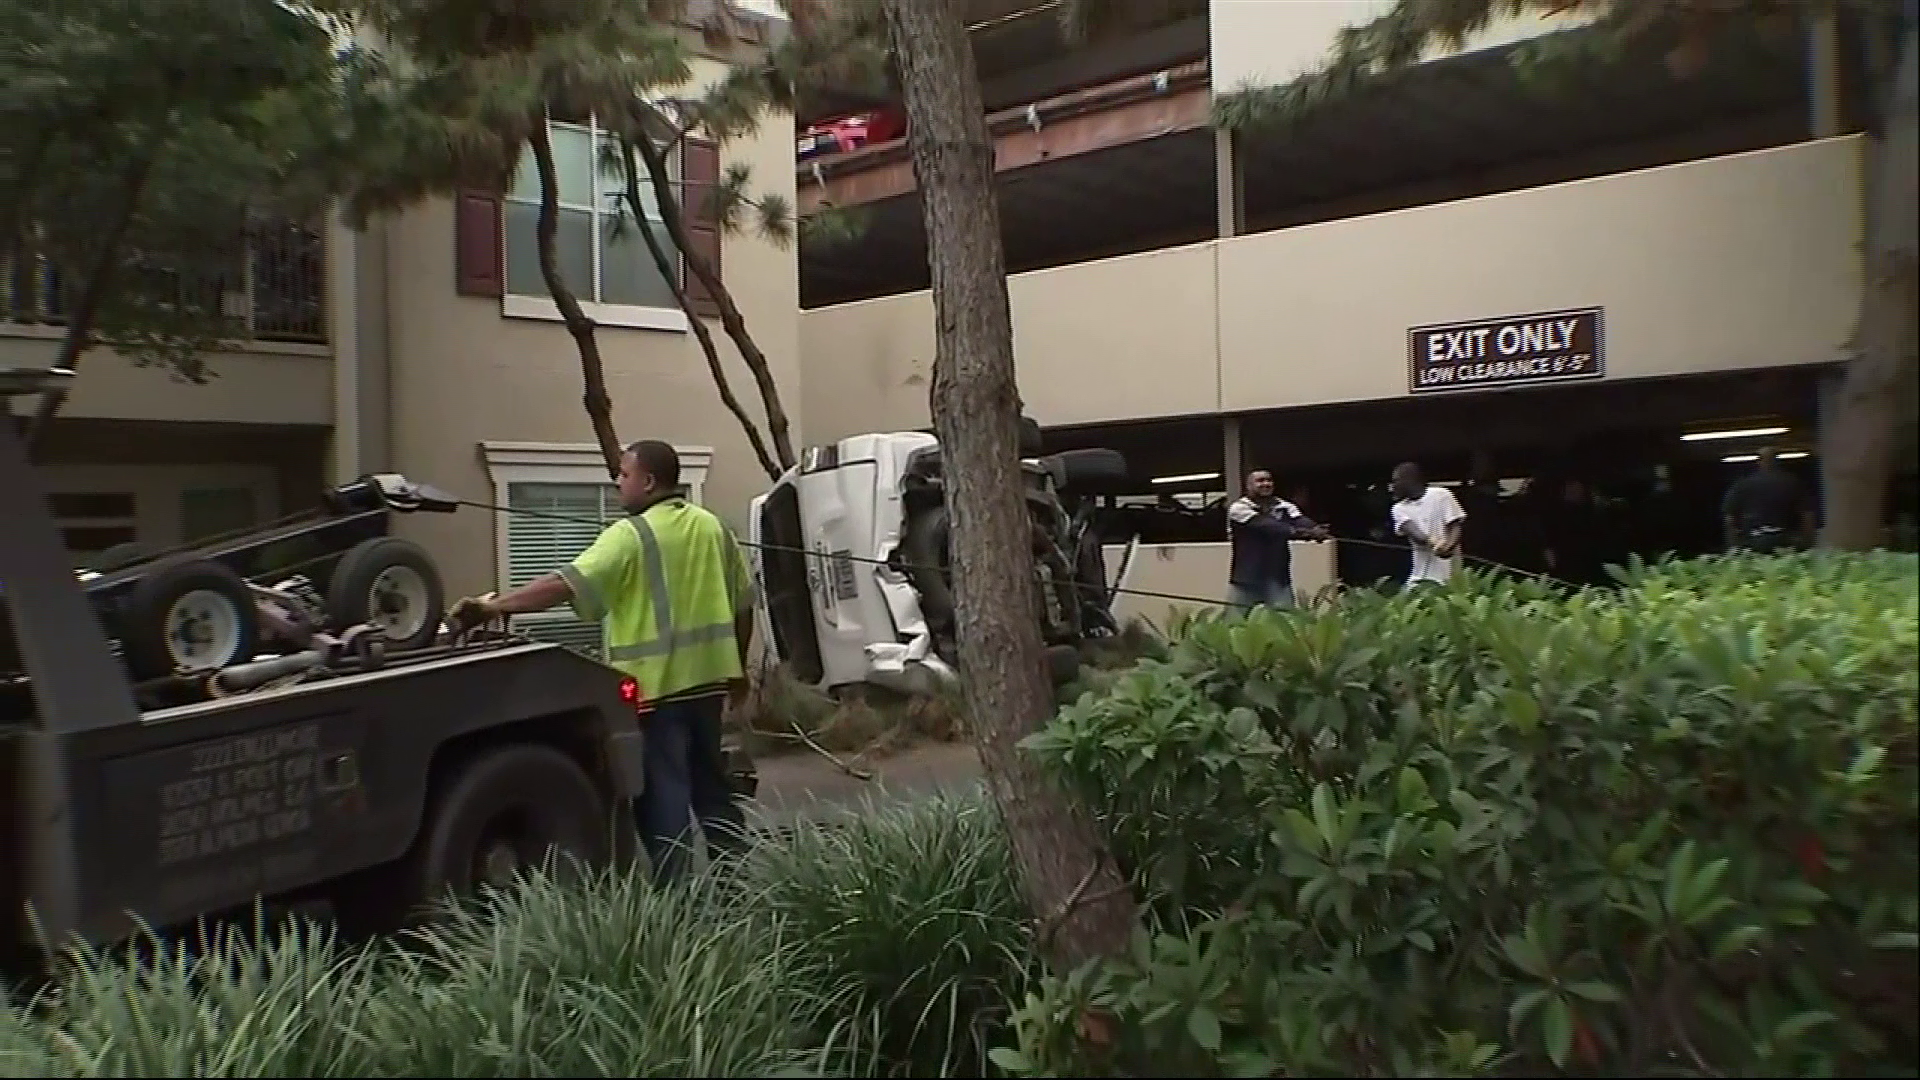 Authorities say an SUV has plunged from the third story of a Houston parking garage after the driver apparently accidentally hit the gas pedal instead of the brakes. (Image/video courtesy: KTRK / AP)